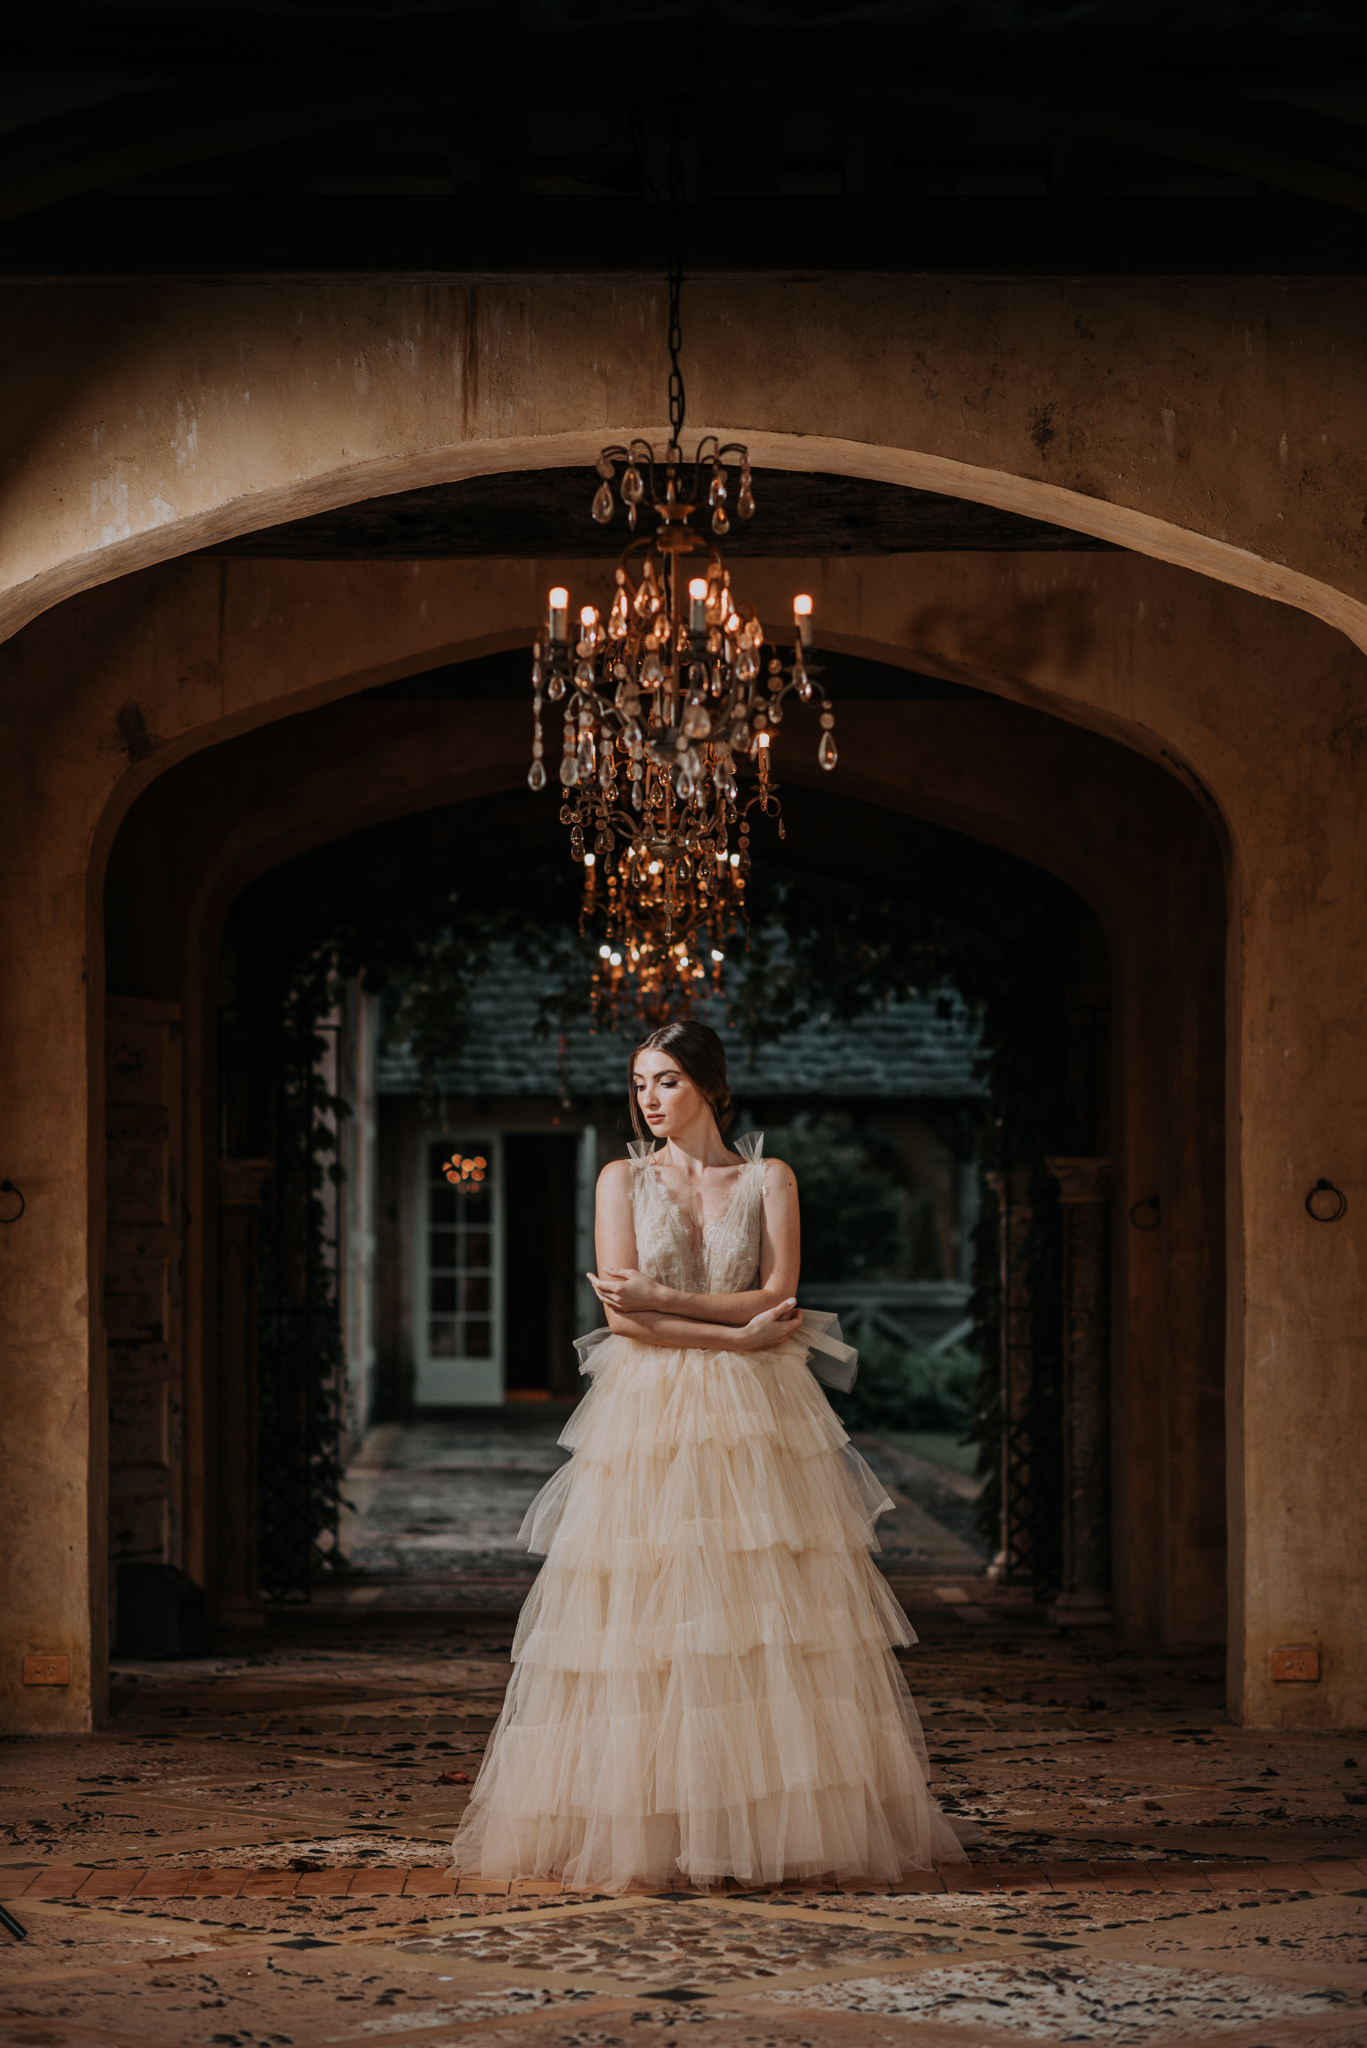 Lovelenscapes Photography X Ulyana Aster Bridal • Les Deux Belettes • Leigh McCoy • Bloodwood Botanica • Alena Iano • Alisa Rudnev • Demi Groot • Jessie Lockley • Maddison Ruby • 148.jpg